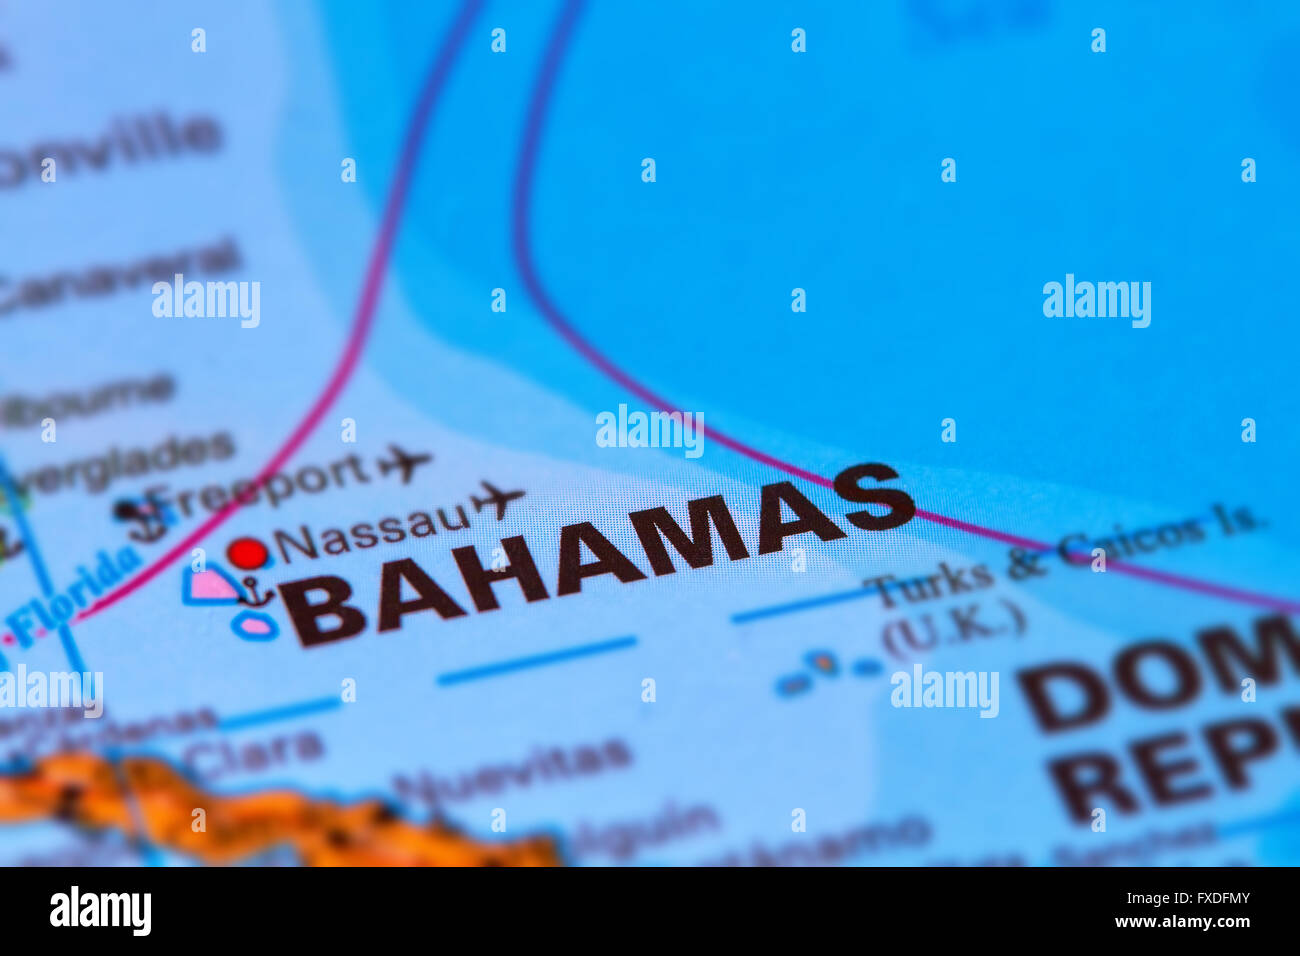 Bahamas and Capital Nassau on the World Map Stock Photo 102330619